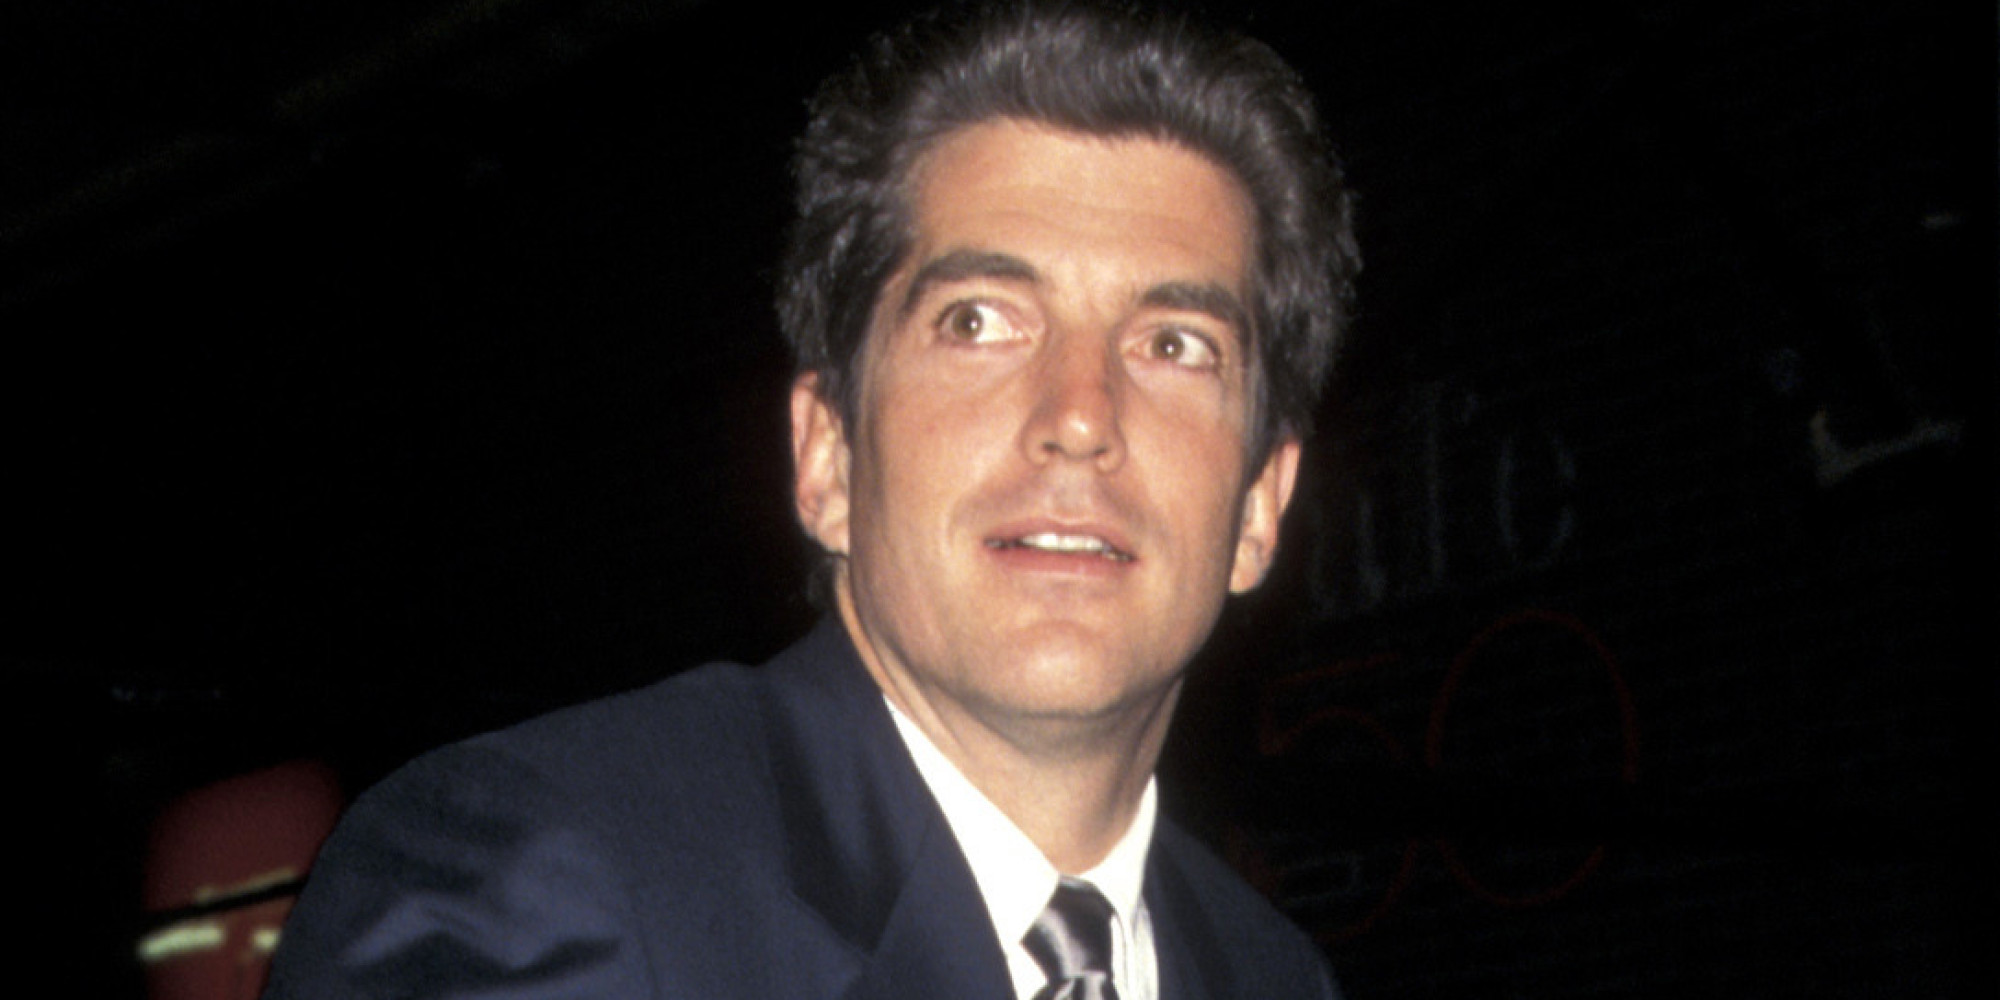 john f kennedy jr was so dreamy he made questionable trends look